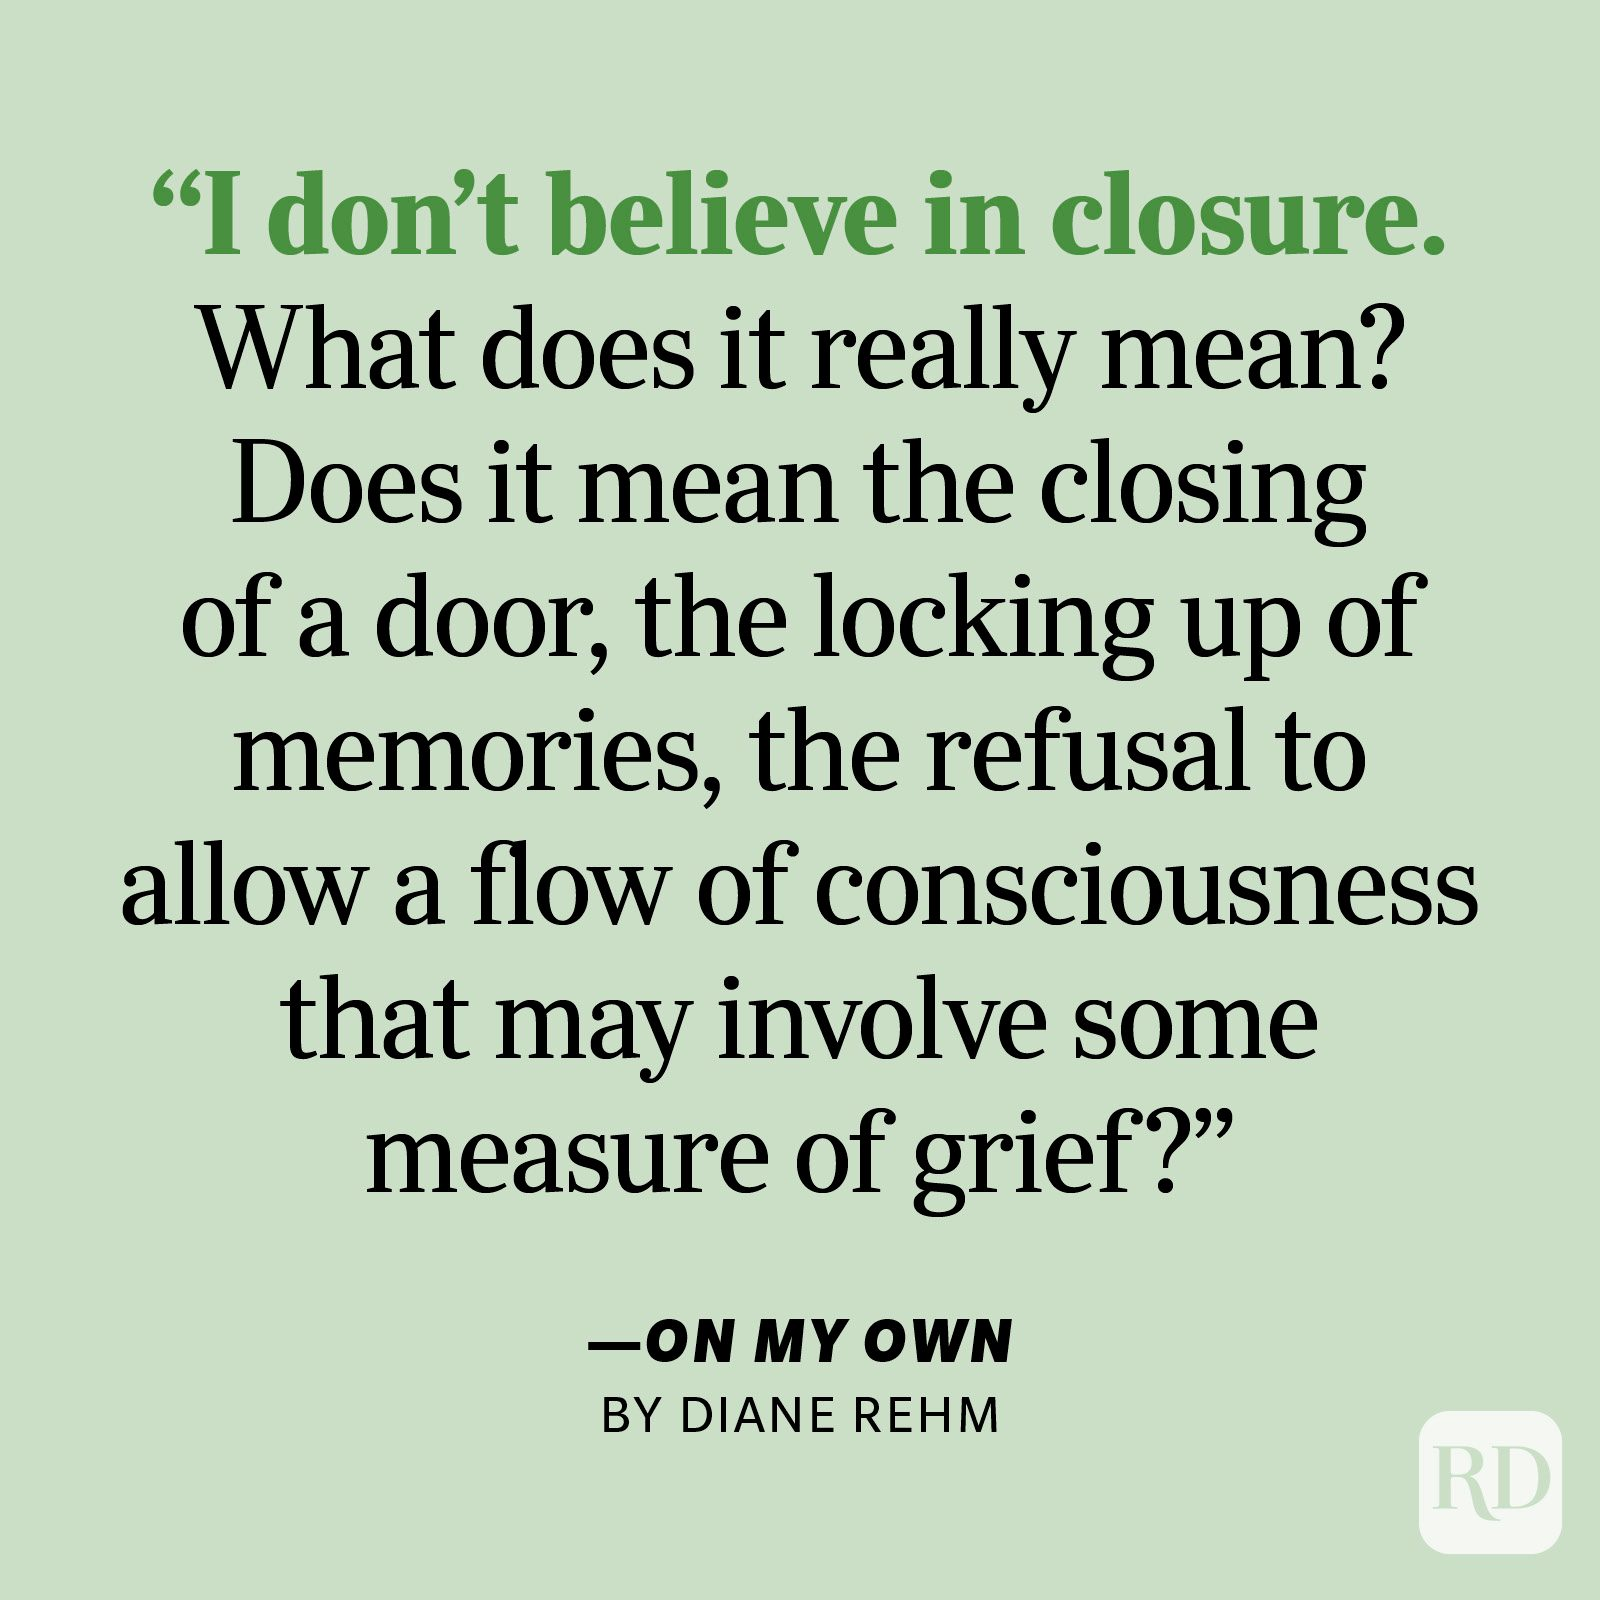 """On My Own by Diane Rehm """"I don't believe in closure. What does it really mean? Does it mean the closing of a door, the locking up of memories, the refusal to allow a flow of consciousness that may involve some measure of grief?"""""""